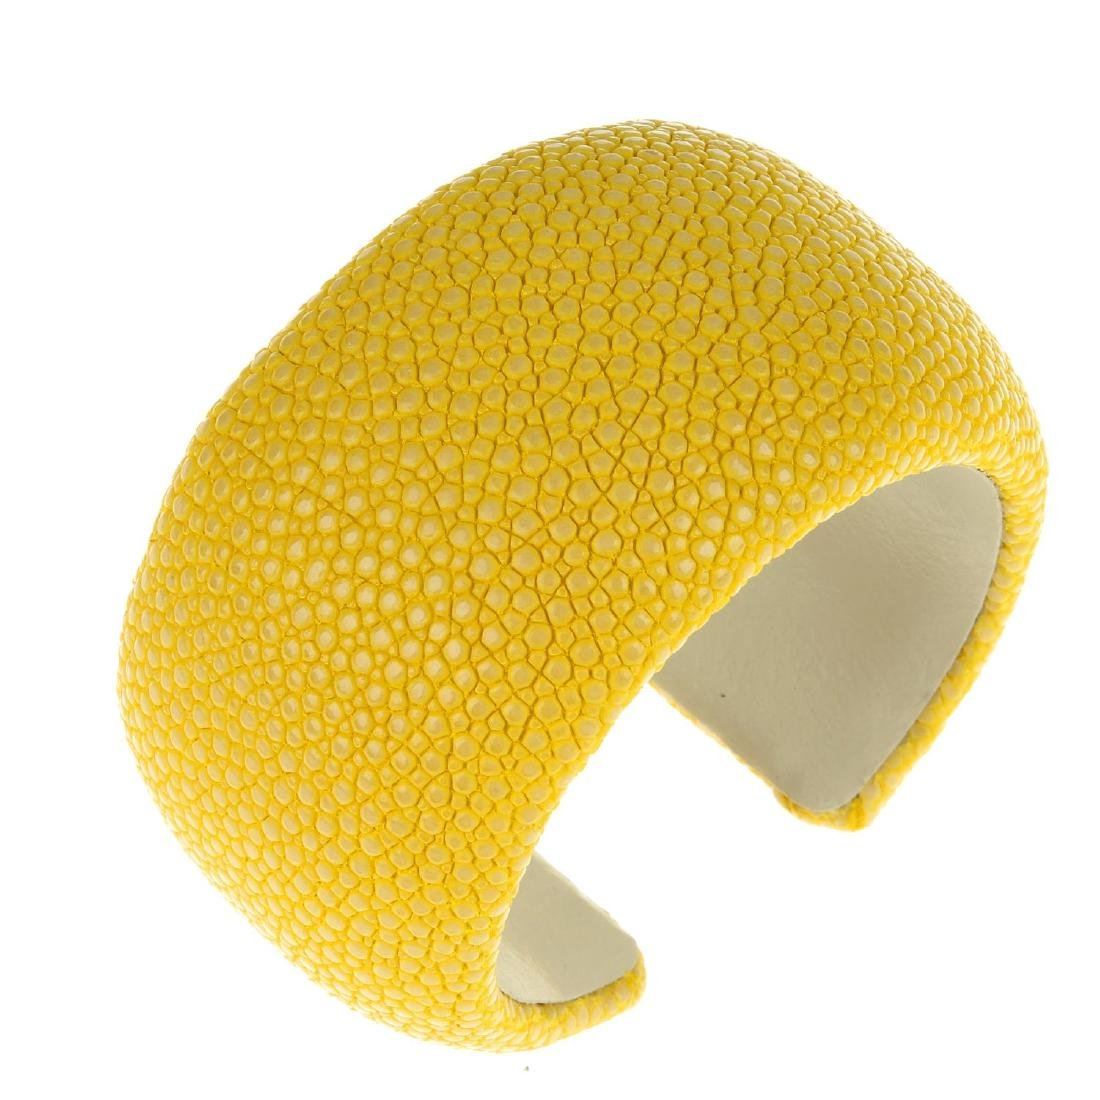 A stingray cuff. The yellow stingray to the outer